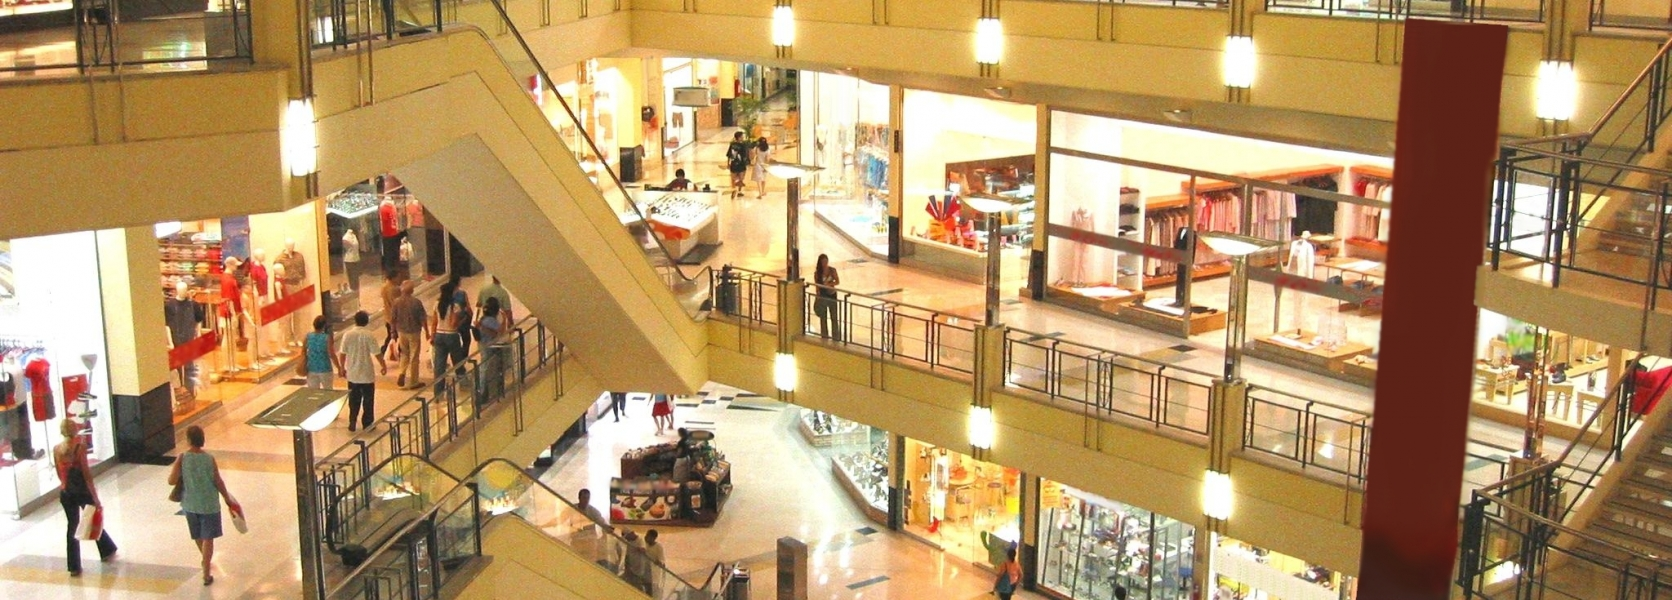 The Retail Apocalypse – Reasons and Realities